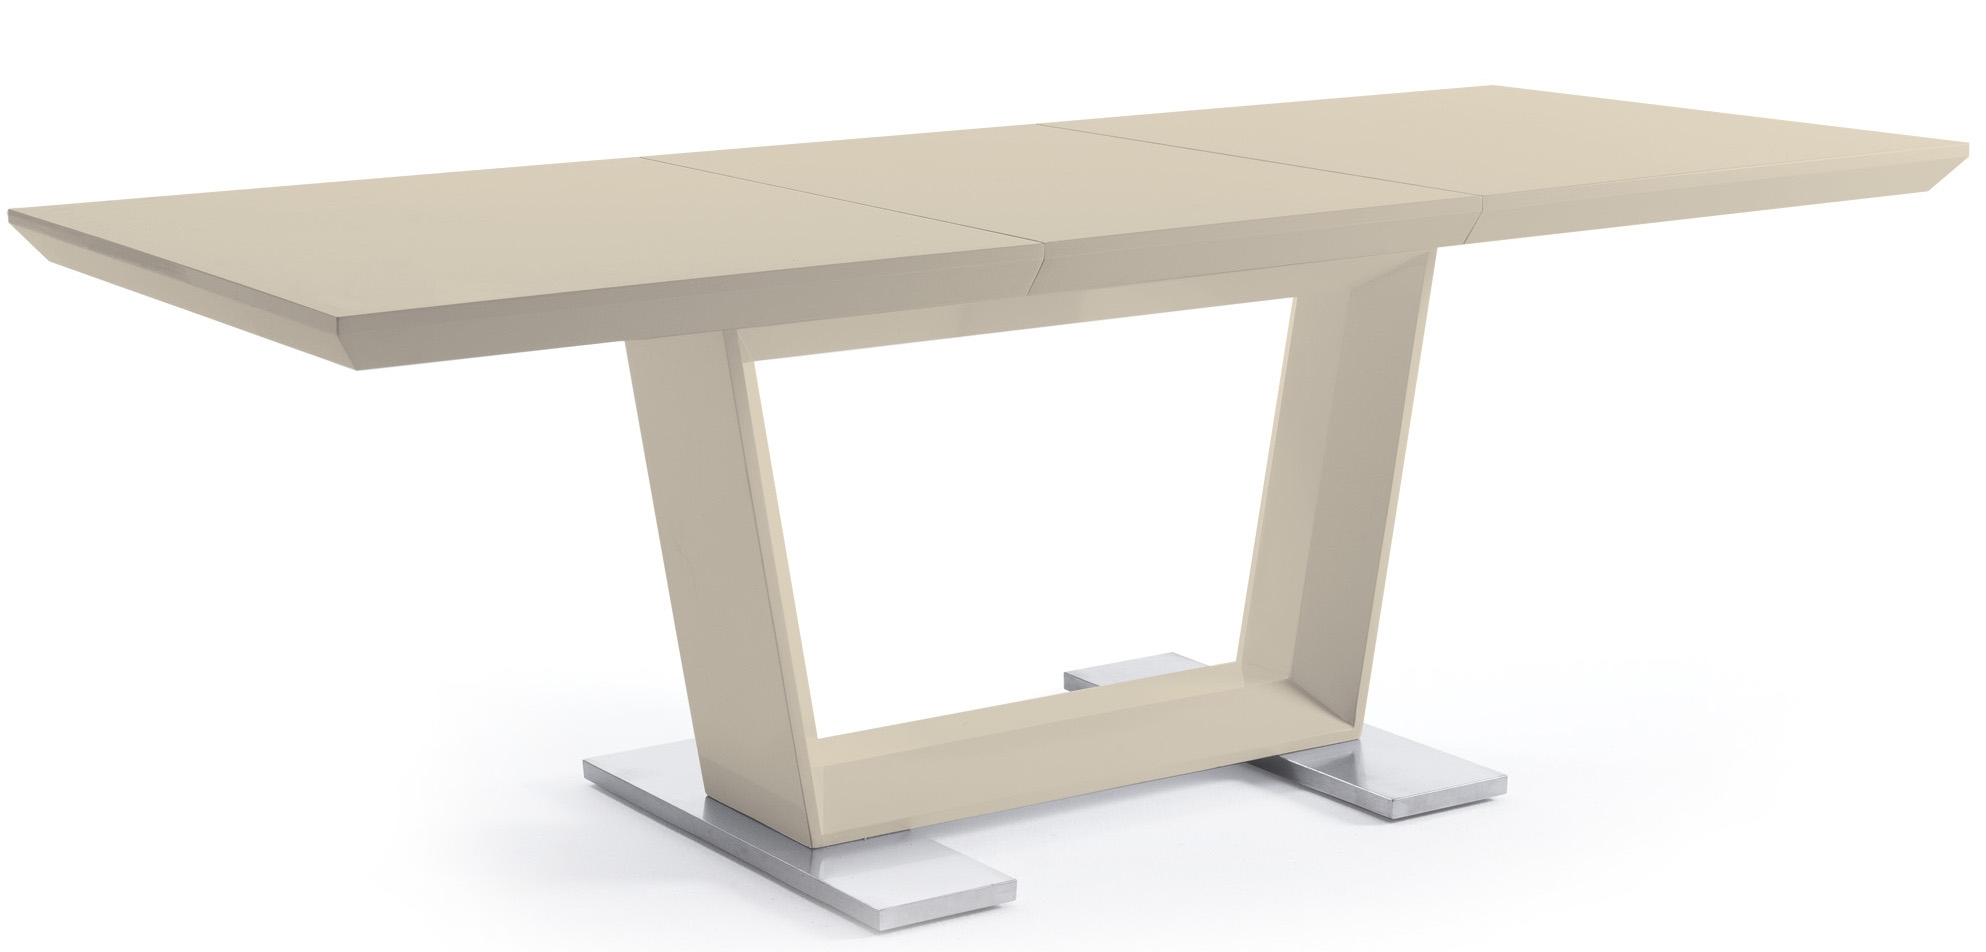 Table rectangulaire rallonge design cr me modena - Table rallonge design ...